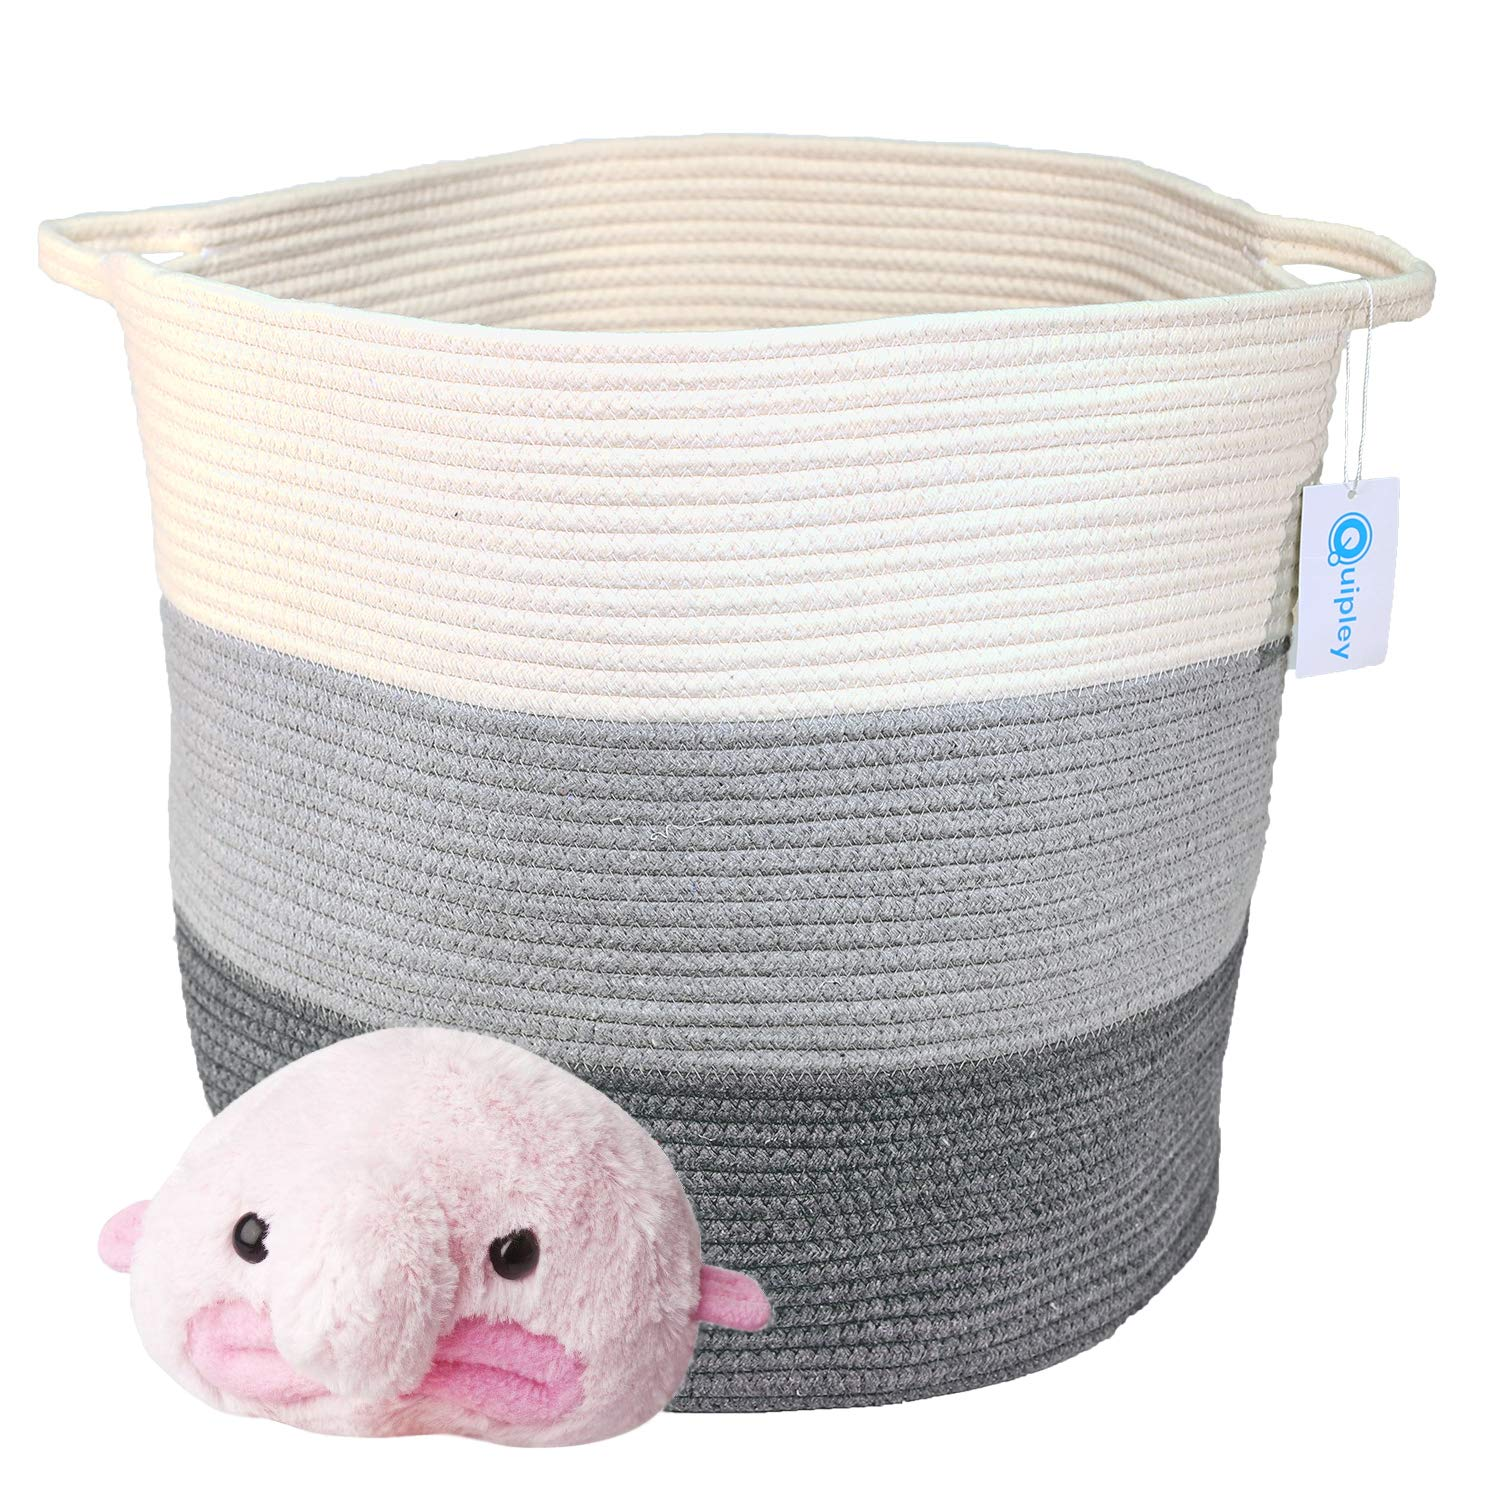 QUIPLEY Premium Quality 17'' x 18'' Cotton Rope Woven Basket White Iceblue Gray - Large Basket for Hampers Storage Laundry Hamper Baby Nursery - Decorative Home Blanket Bin for Clothes Comforter Pillow by Quipley